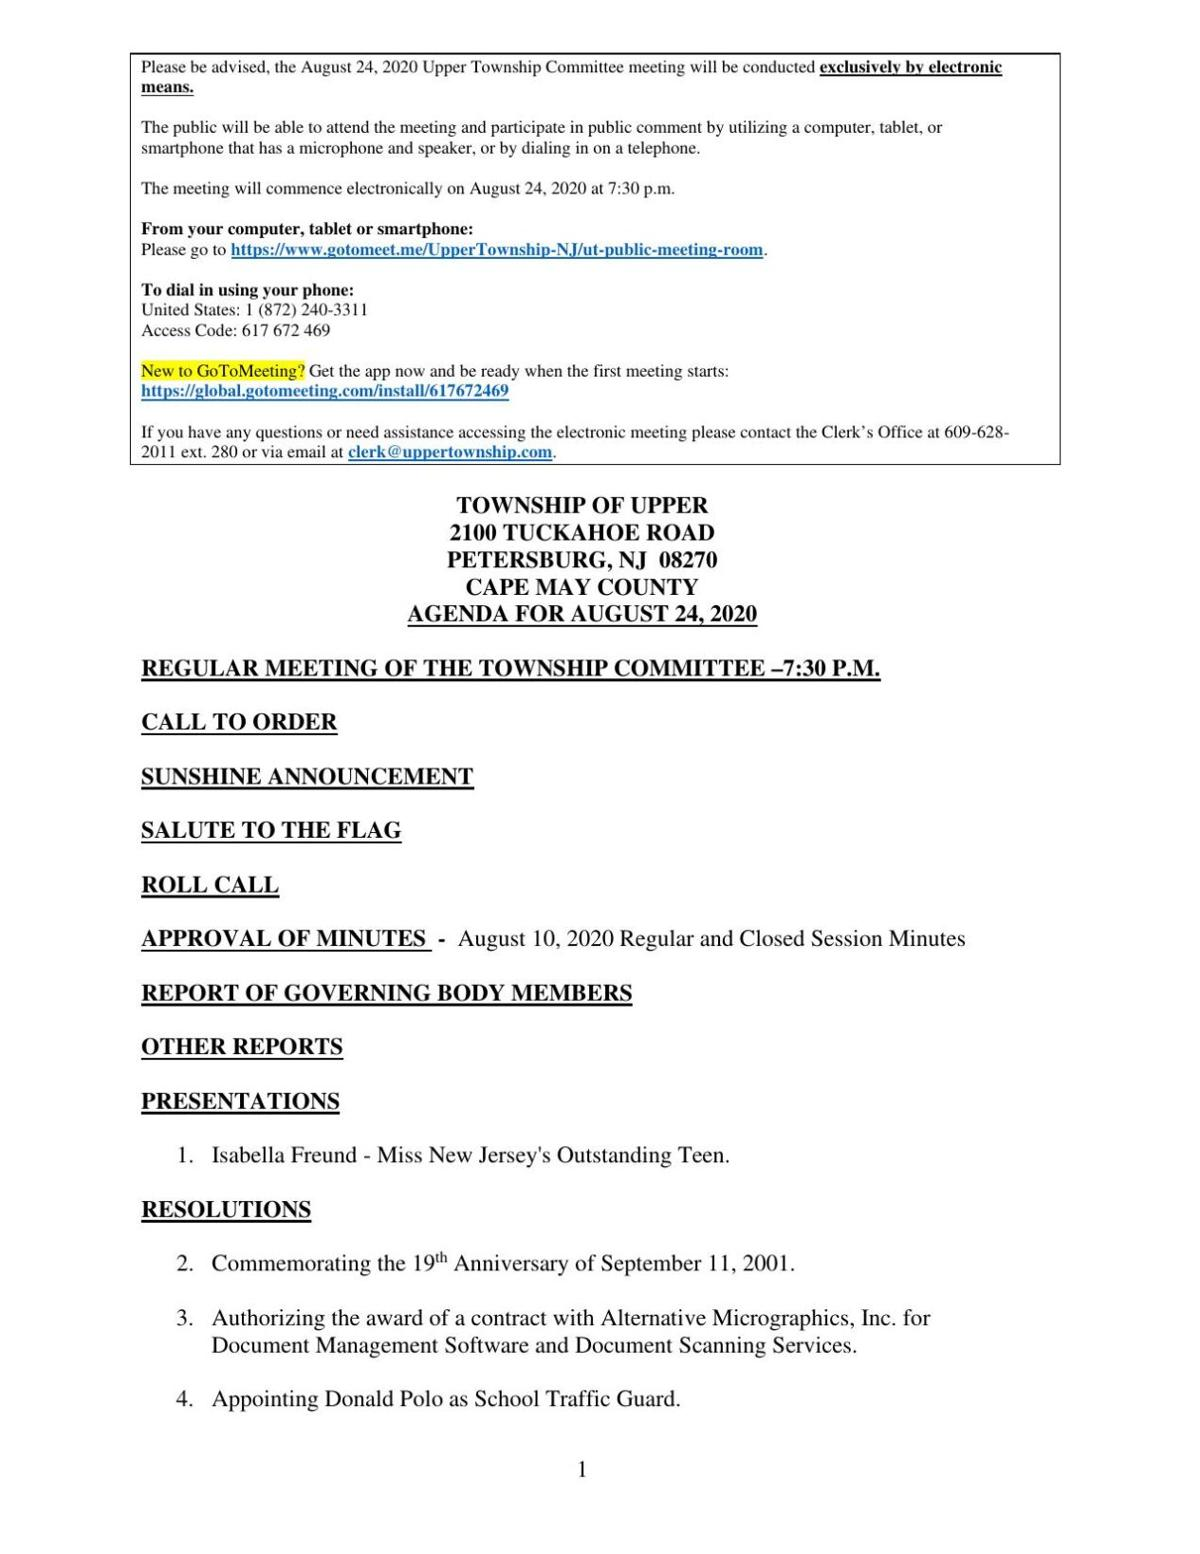 Upper Township Committee Meeting Agenda Aug. 24, 2020